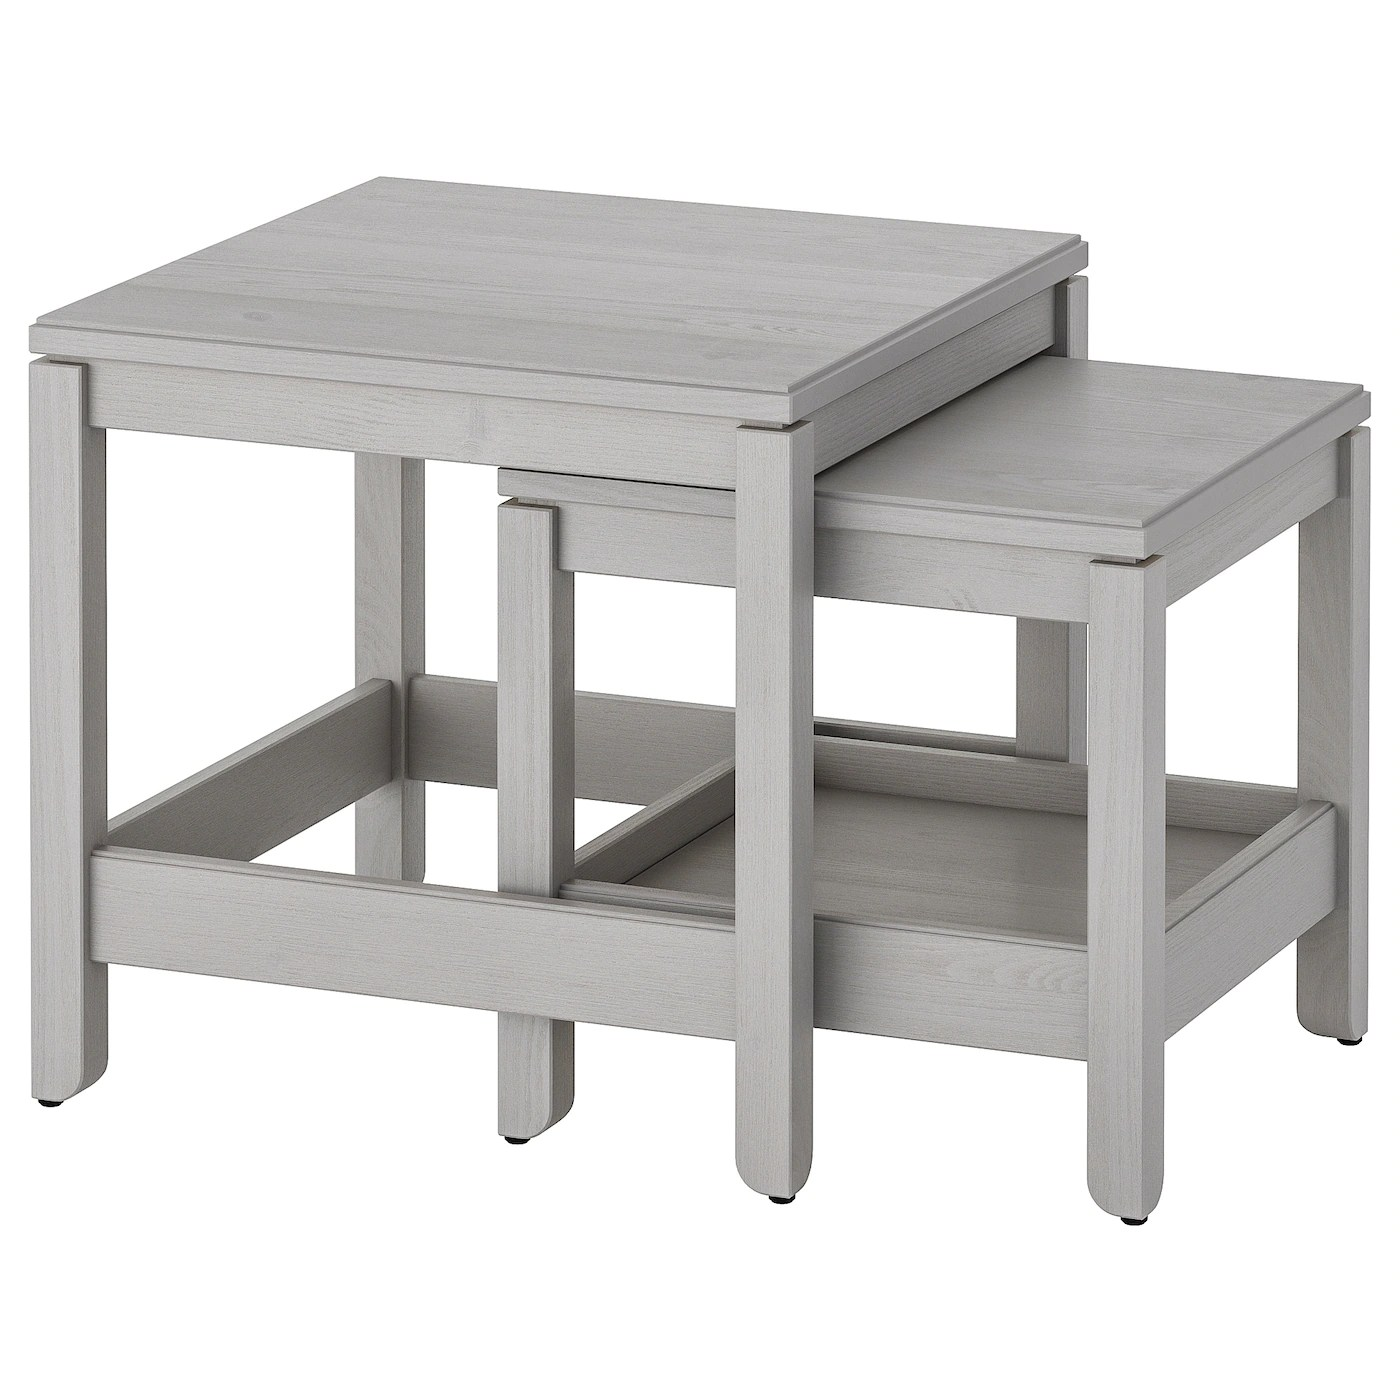 Havsta Grey Nest Of Tables Set Of 2 Ikea